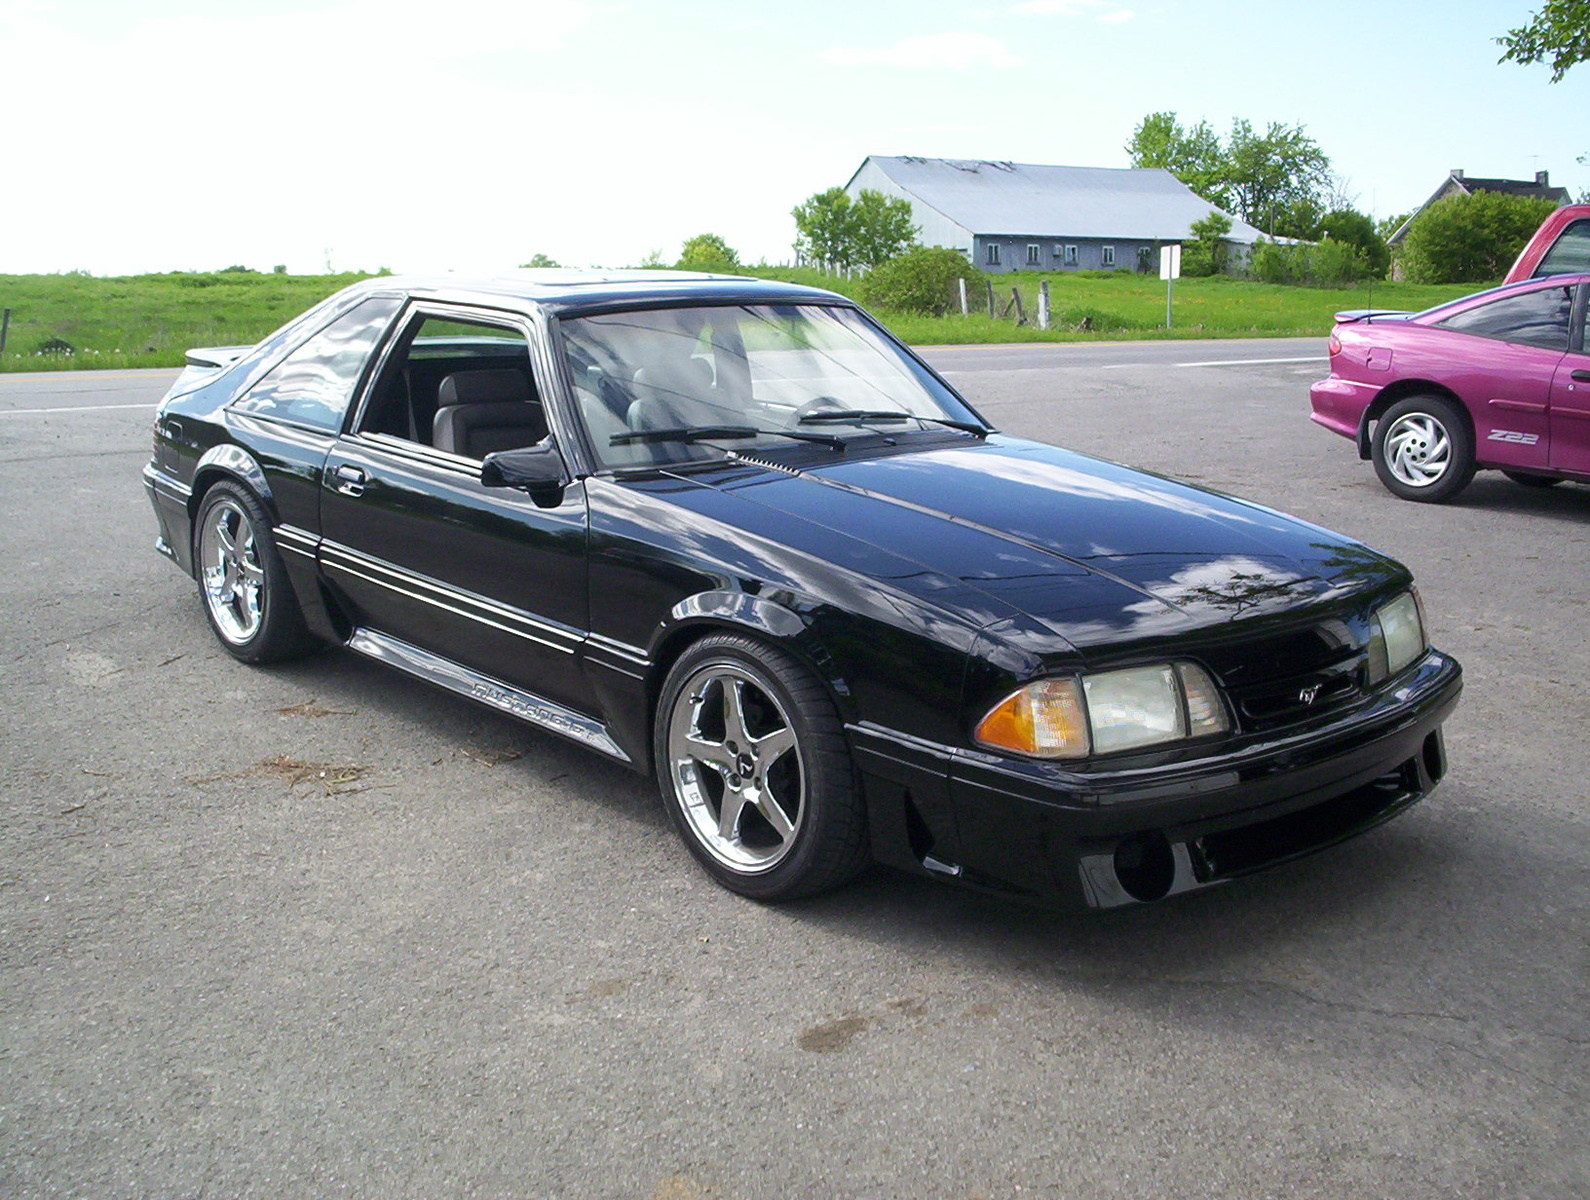 Picture of 1992 ford mustang gt hatchback